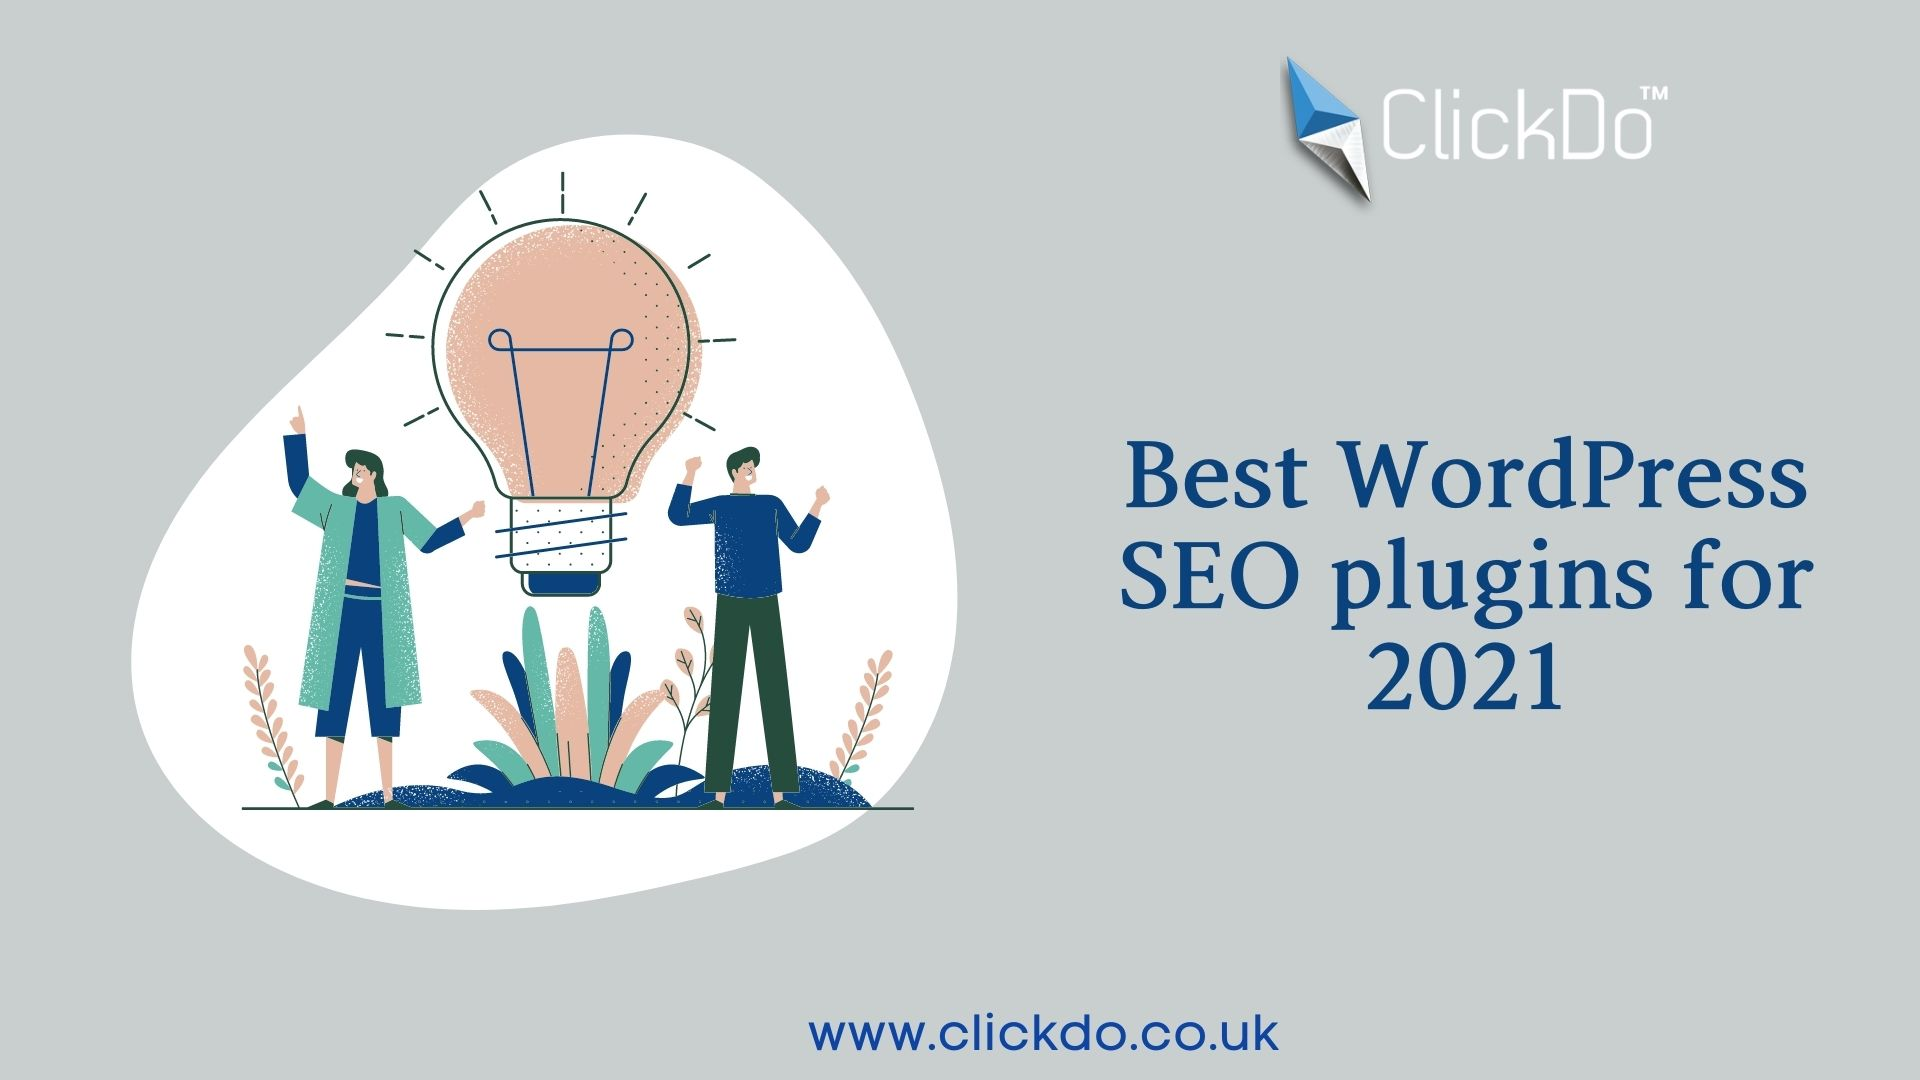 Best WordPress SEO plugins for 2021